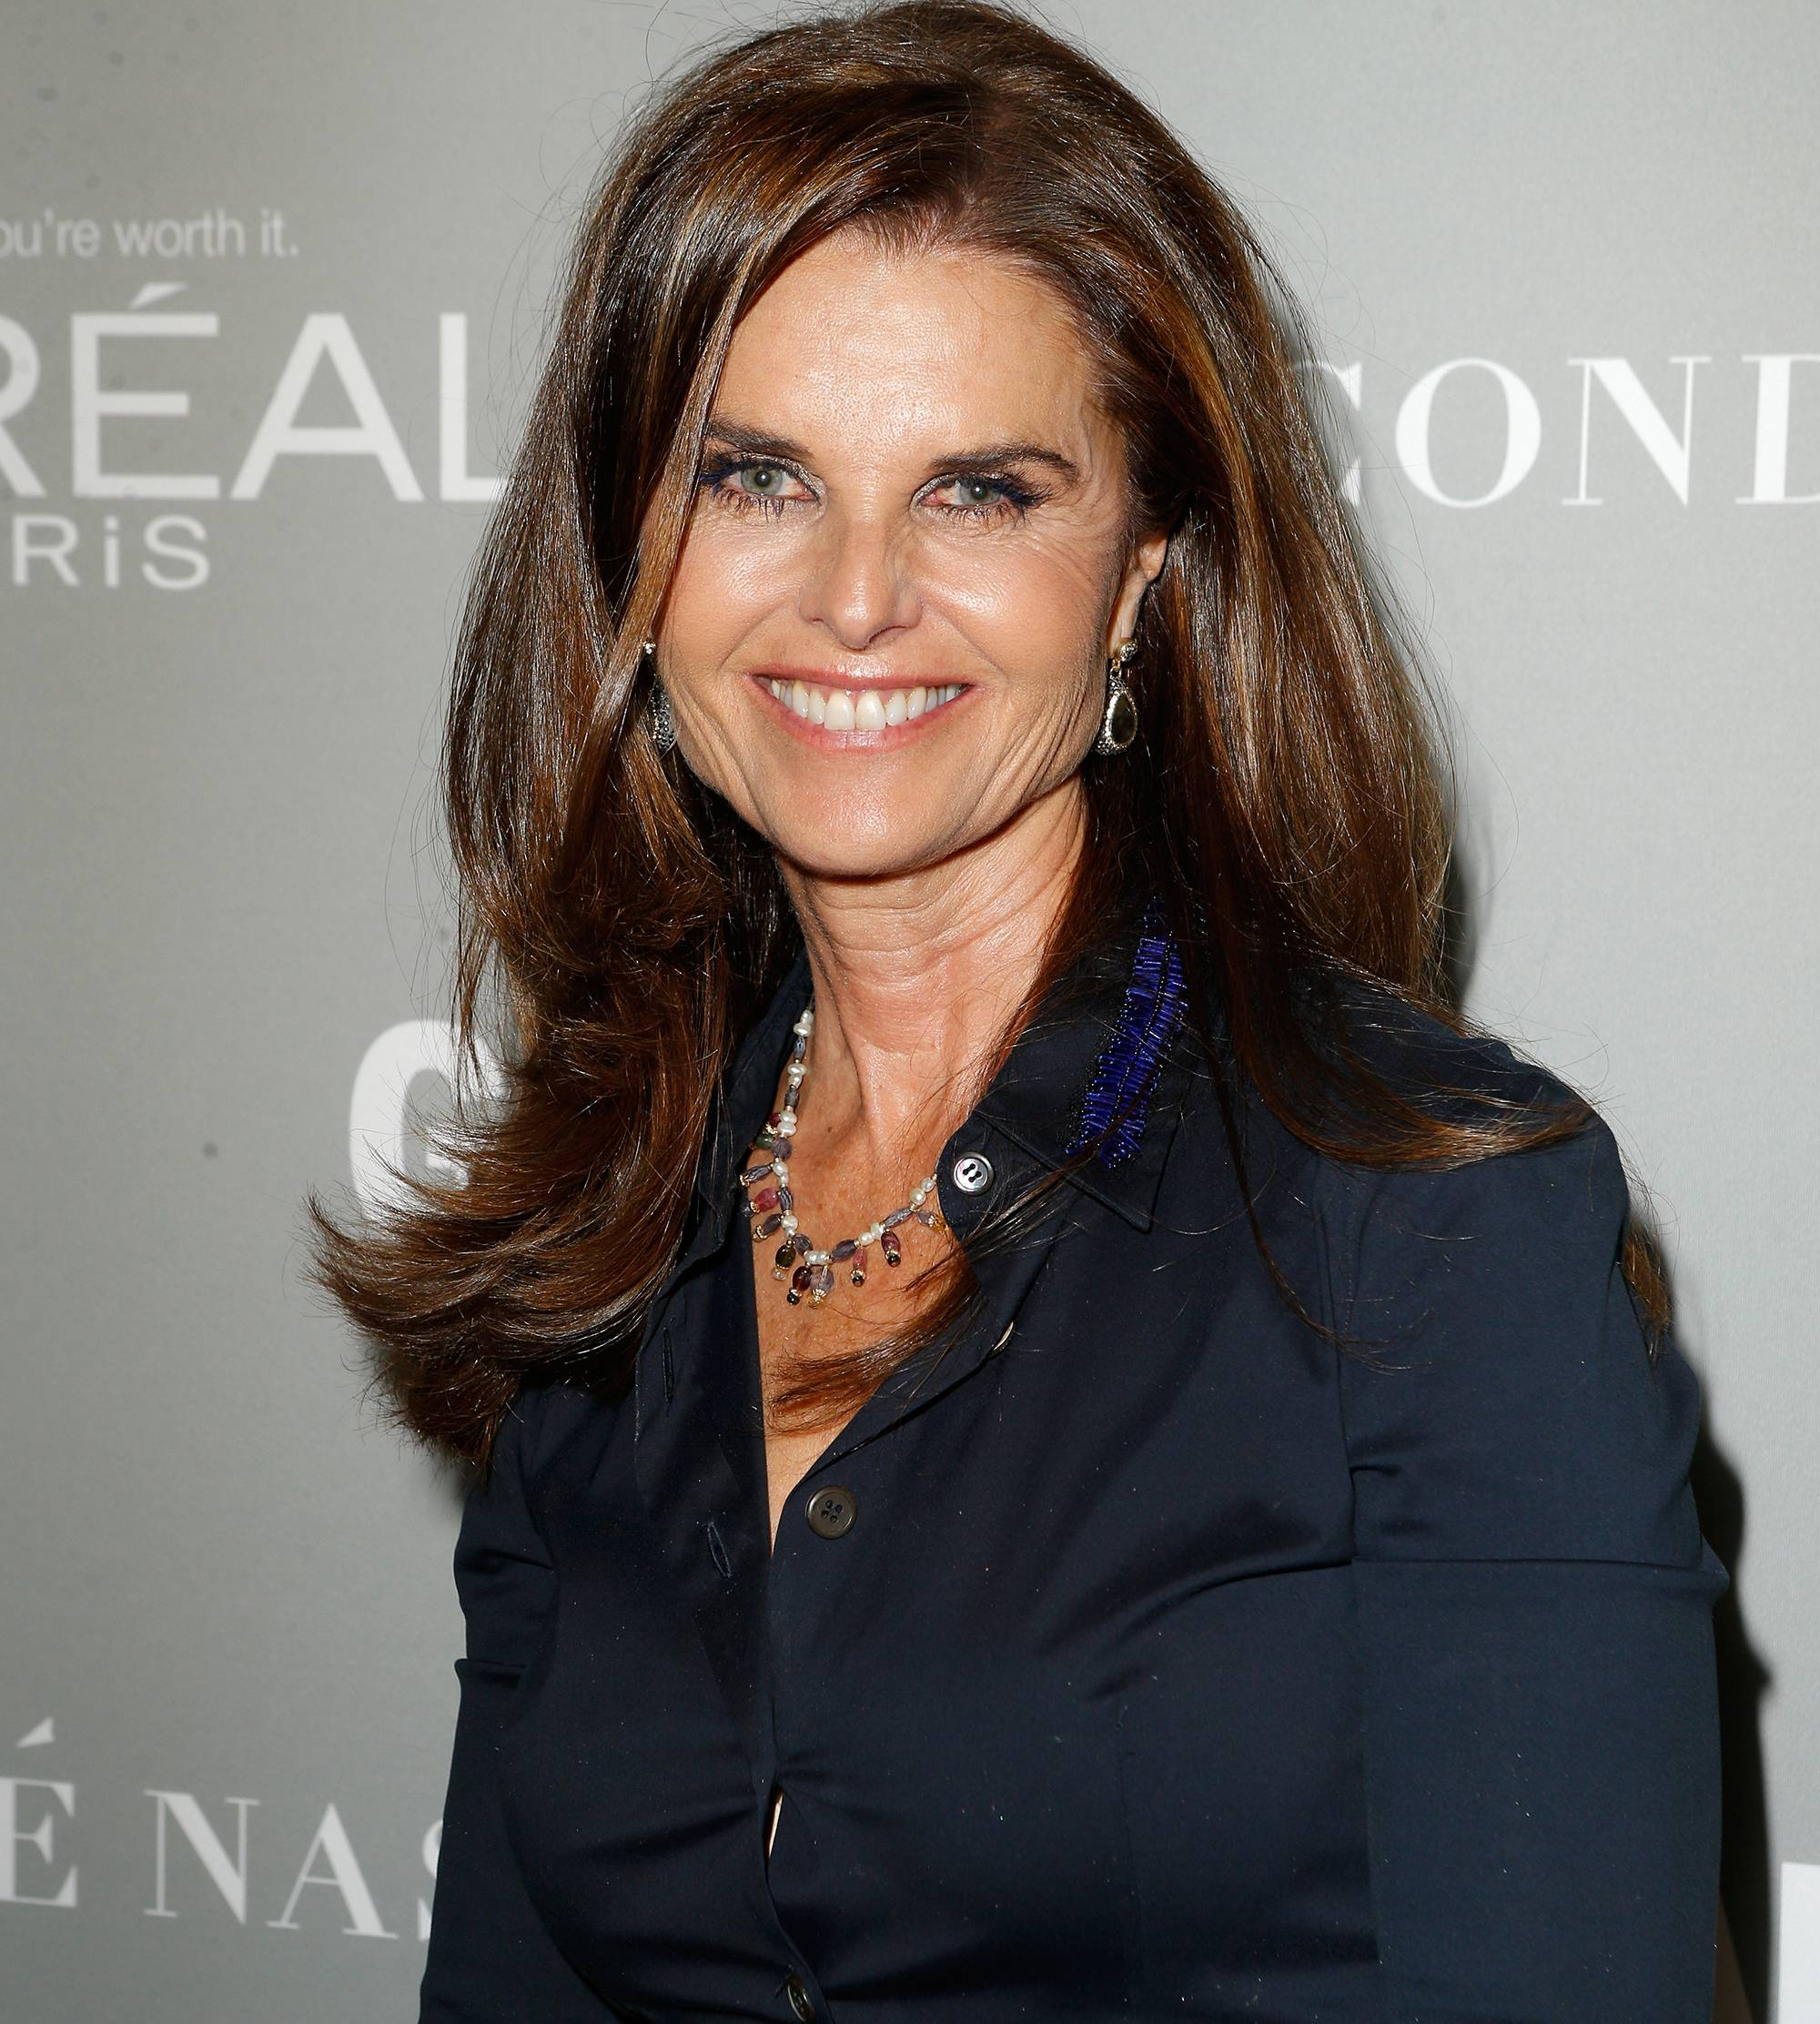 Maria Shriver's career